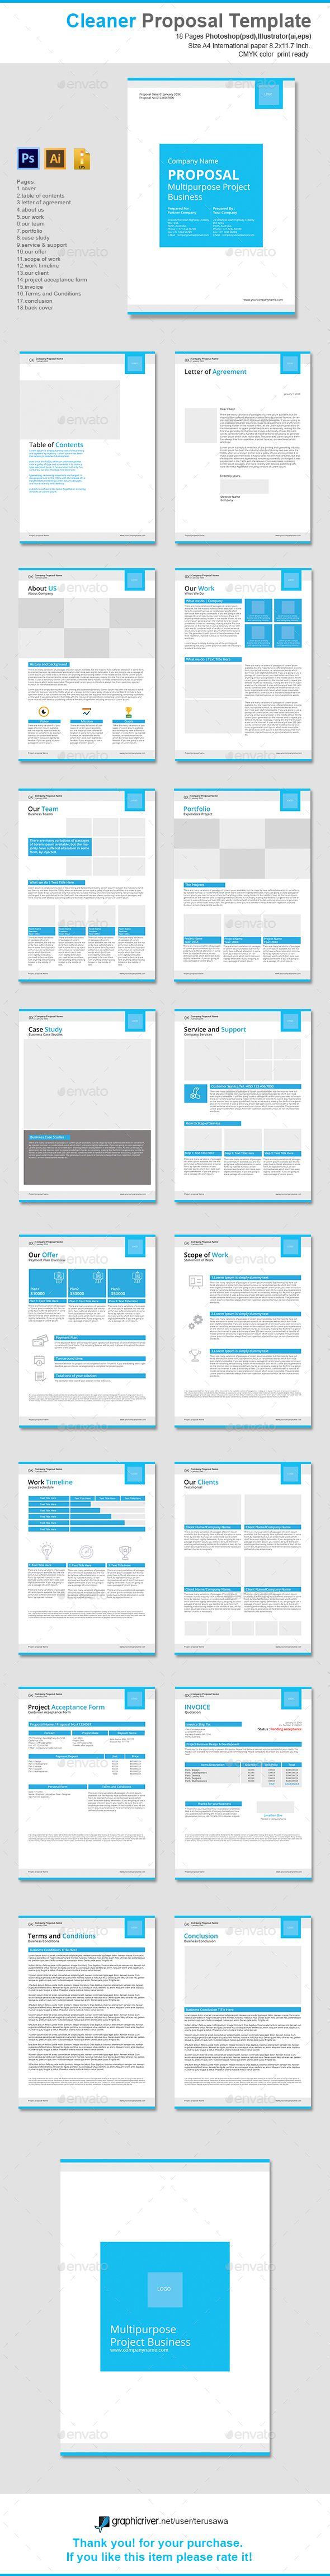 best ideas about invoice layout make invoice cleaner proposal template here graphicriver net item